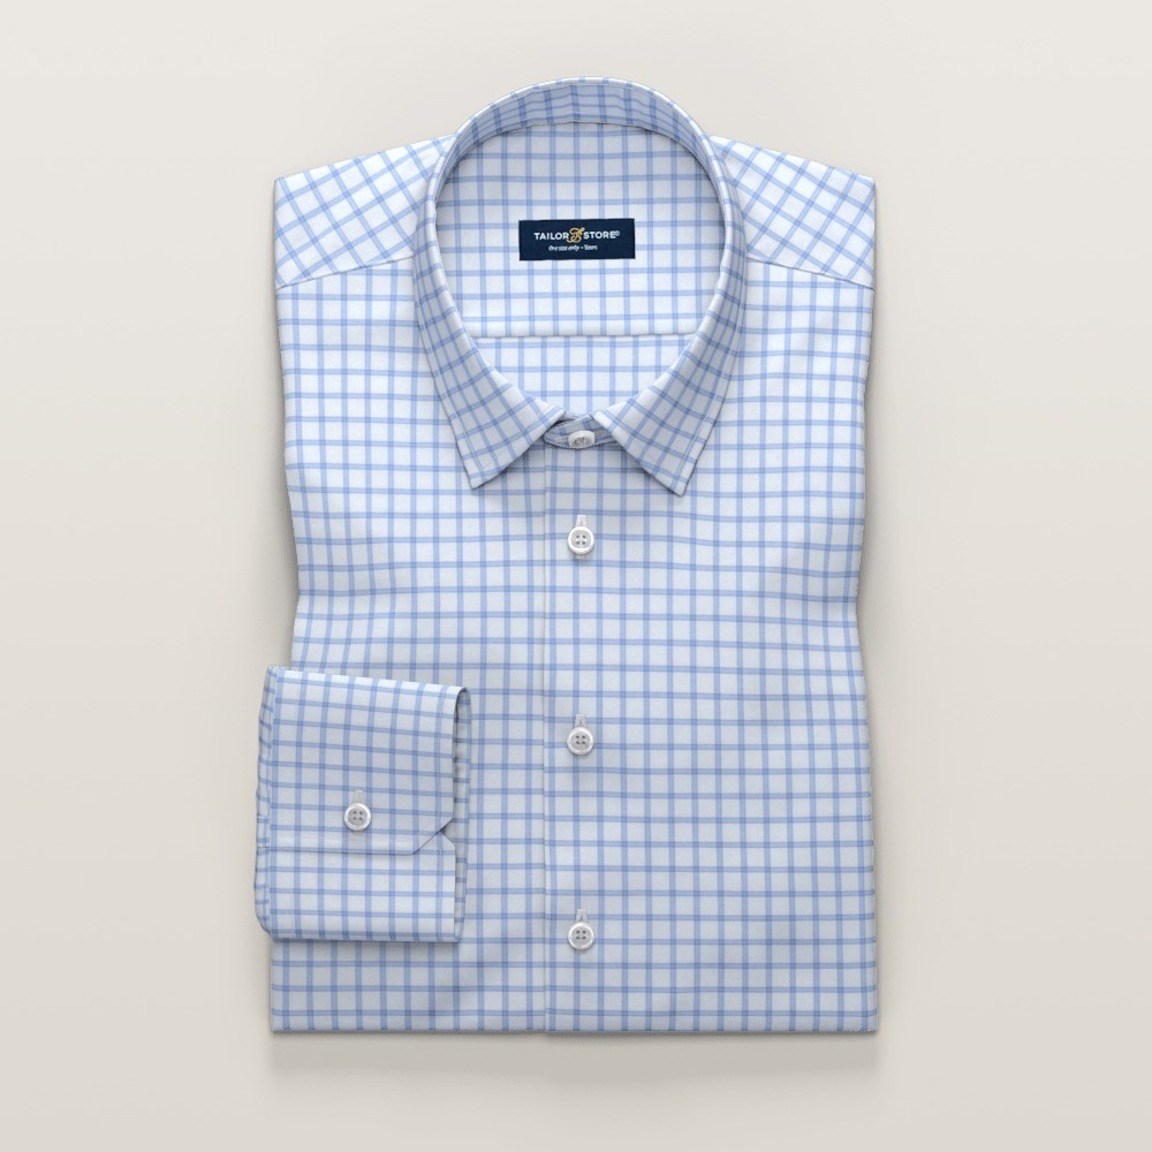 Non-Iron business shirt in light blue checkered twill